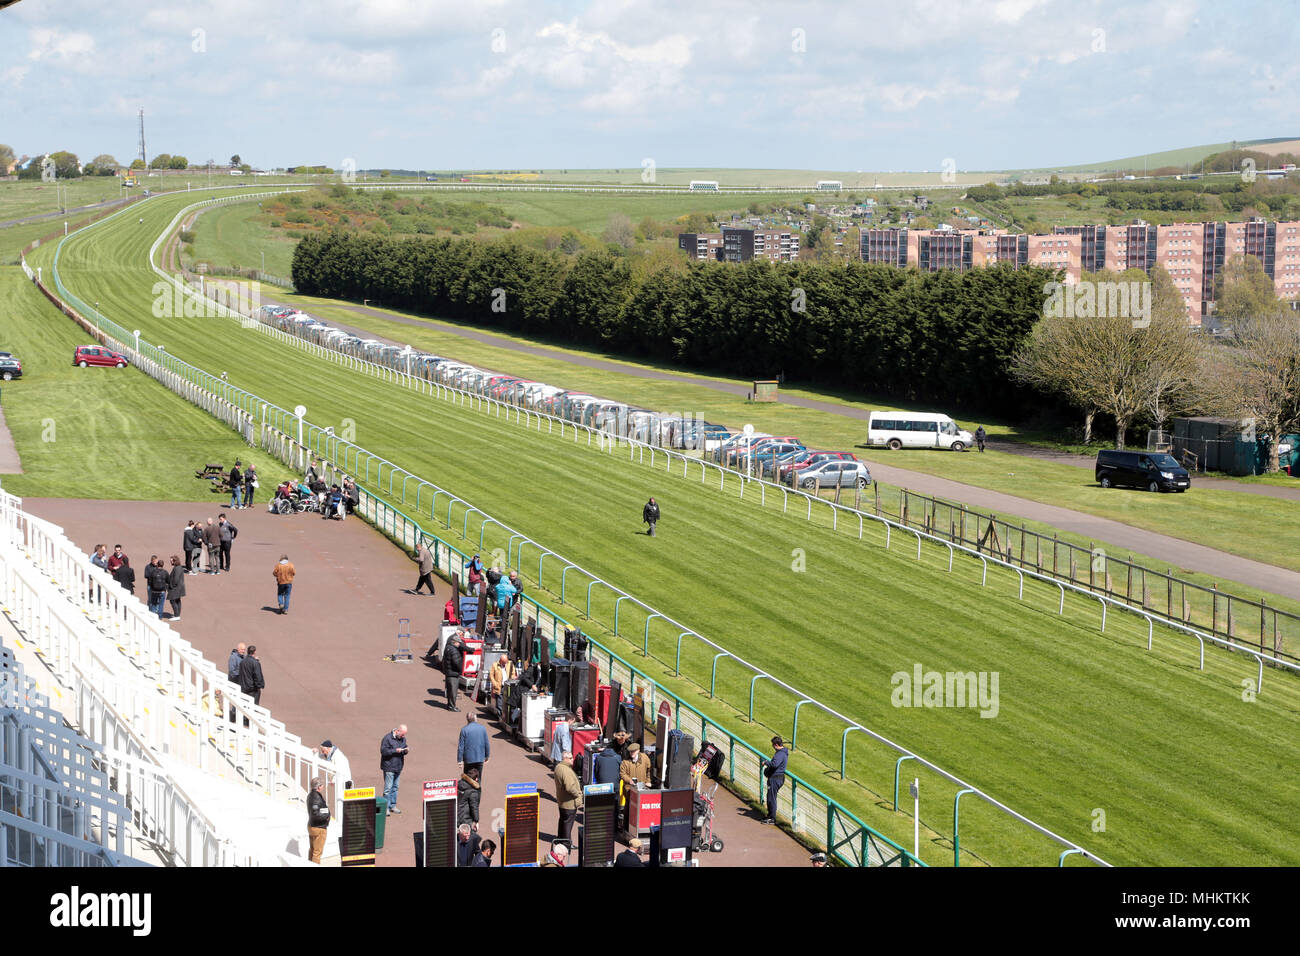 Sunny May afternoon at Brighton Racecourse Stock Photo